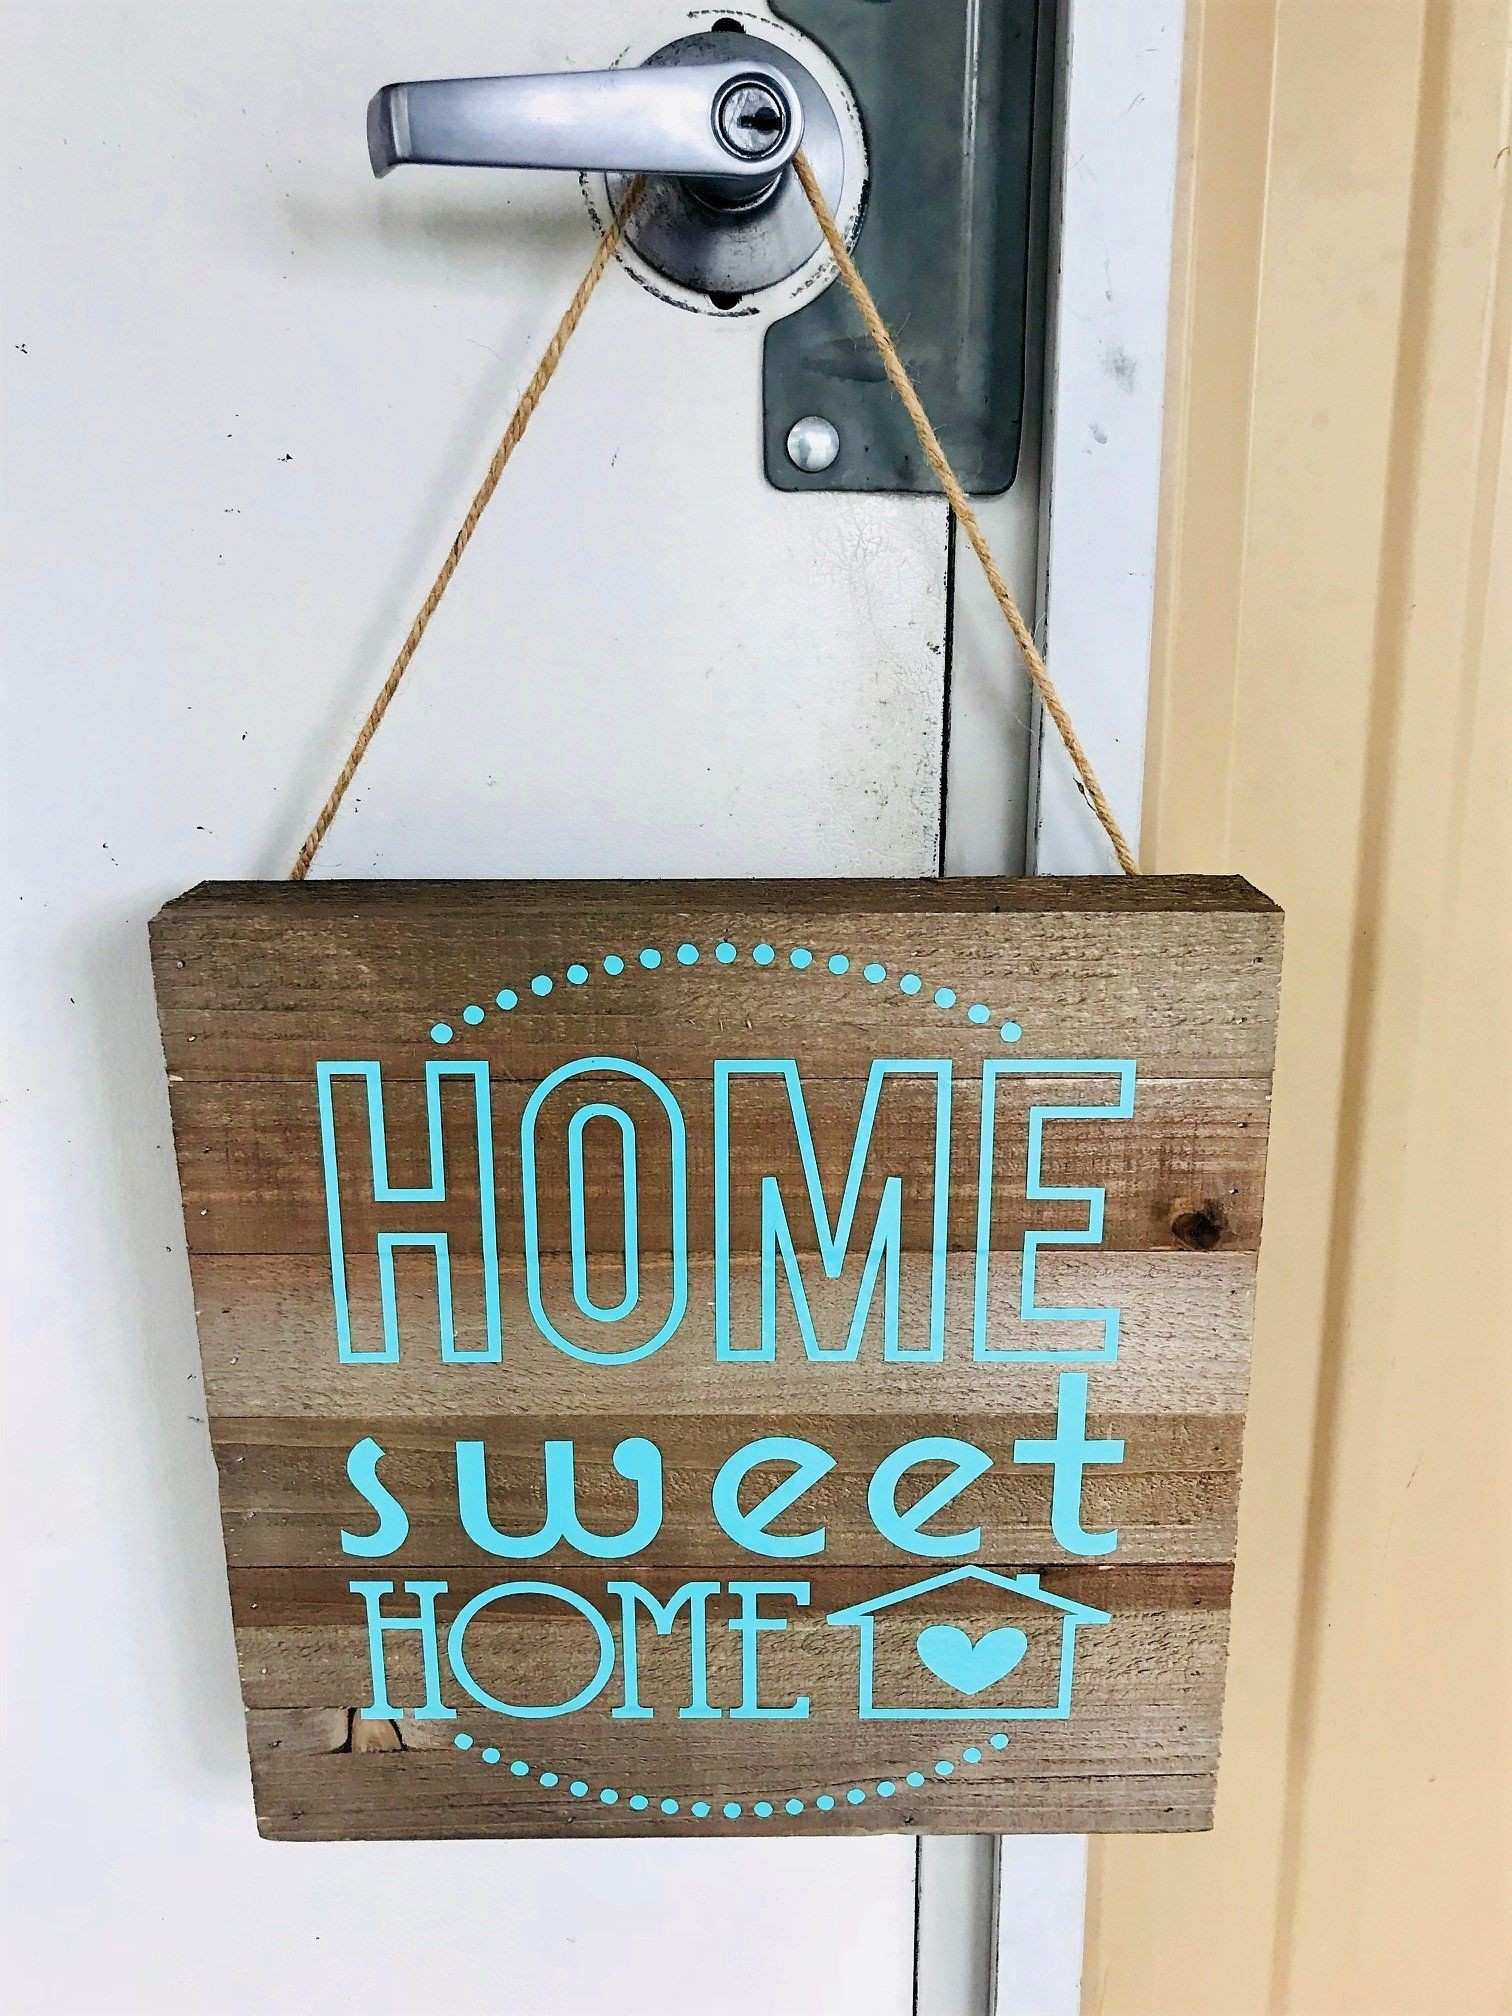 Home Sweet Home Wood Sign 12x12 Hanging Wall Decor Teal Vinyl